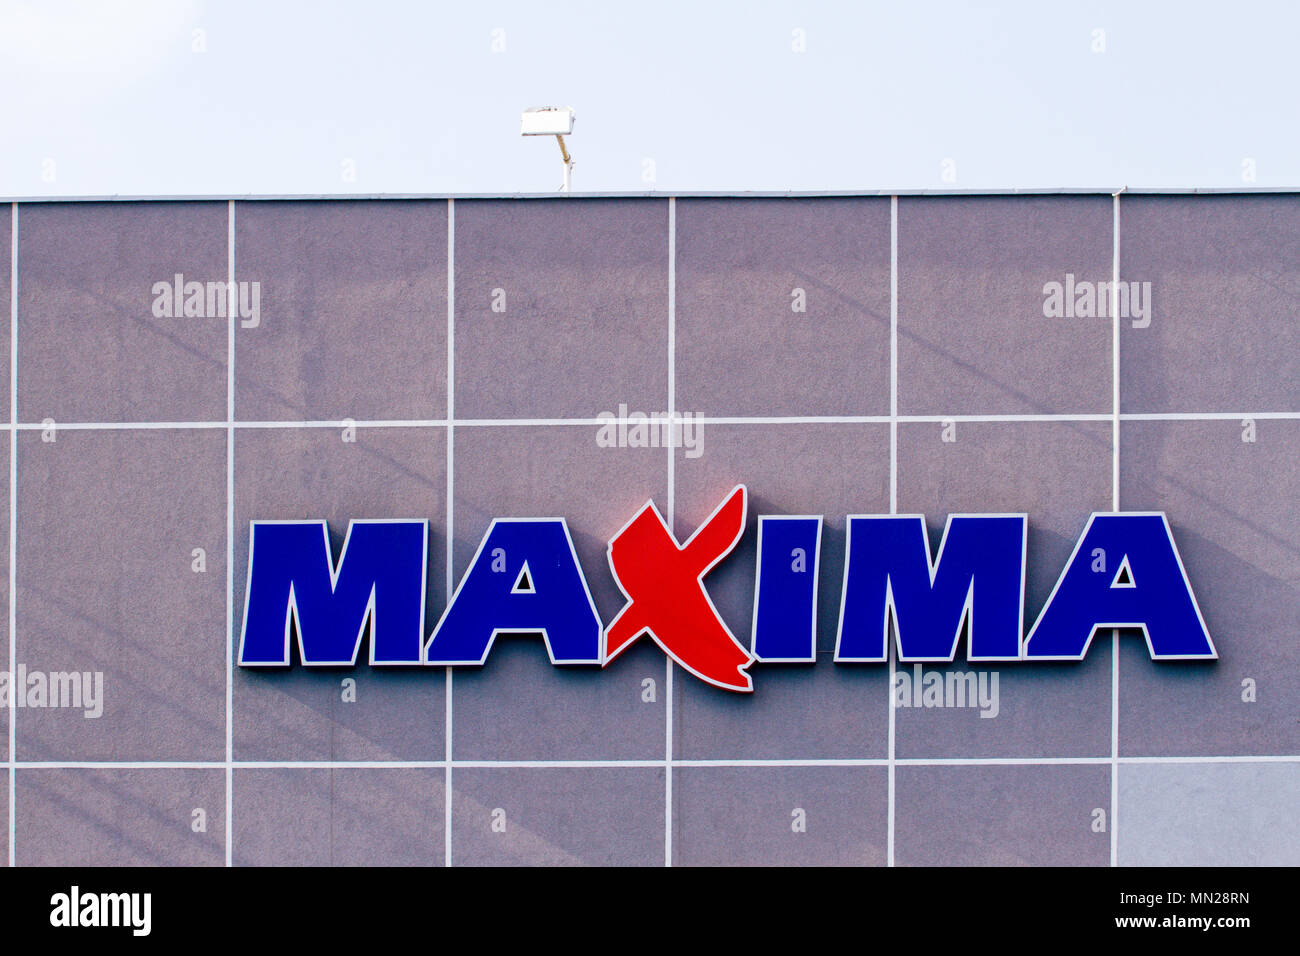 MAXIMA store logo  Maxima is a retail chain operating food